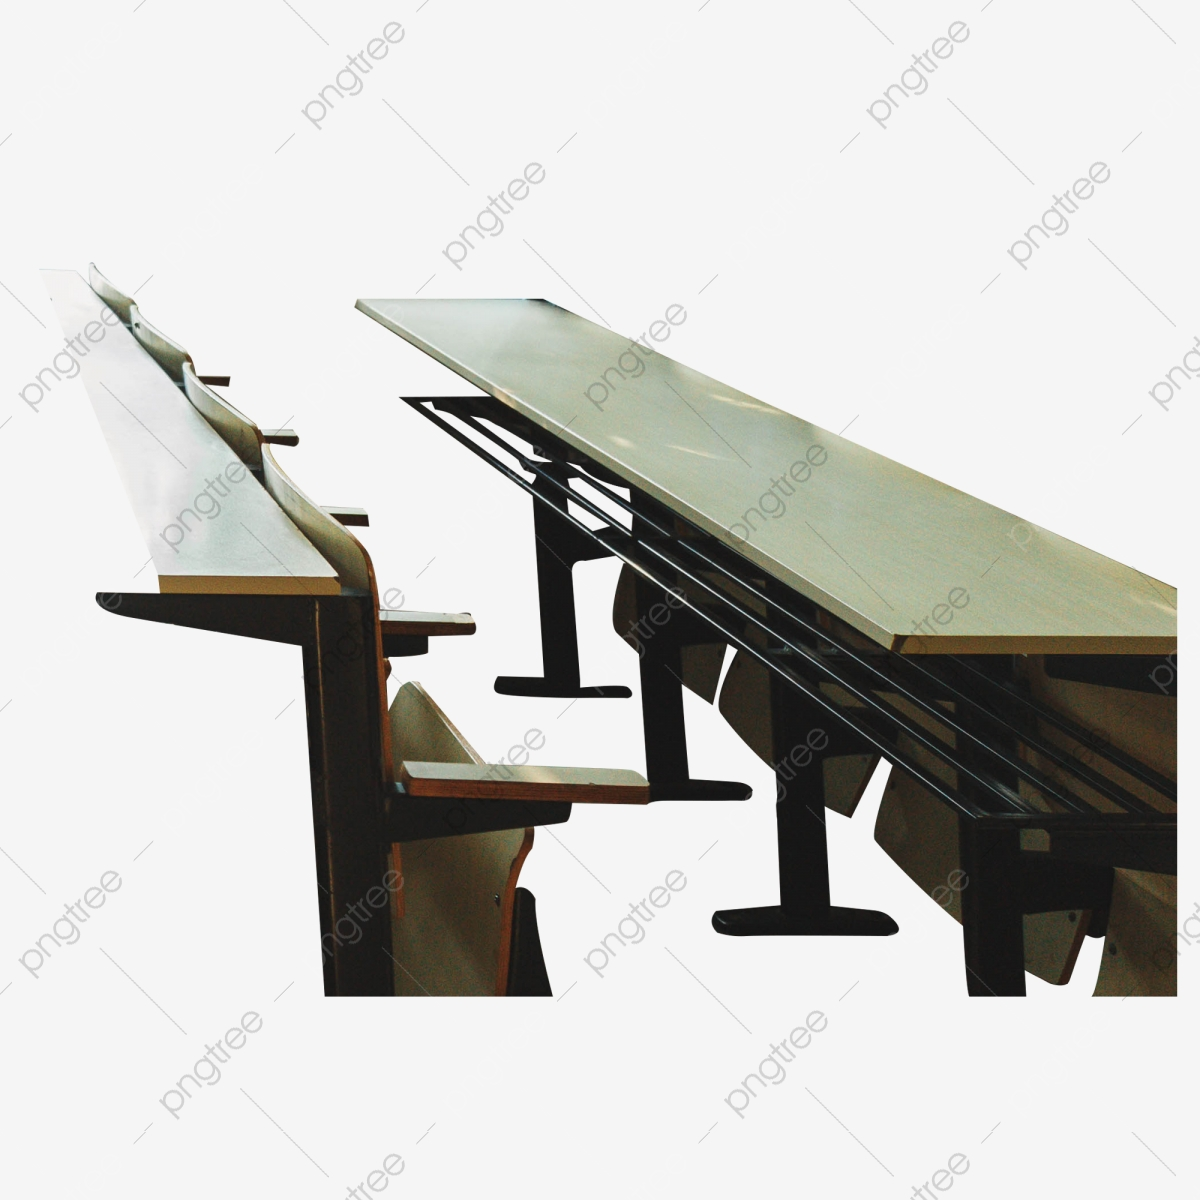 Picture of: Classroom Tables And Chairs Table Study Study Table Png Transparent Clipart Image And Psd File For Free Download